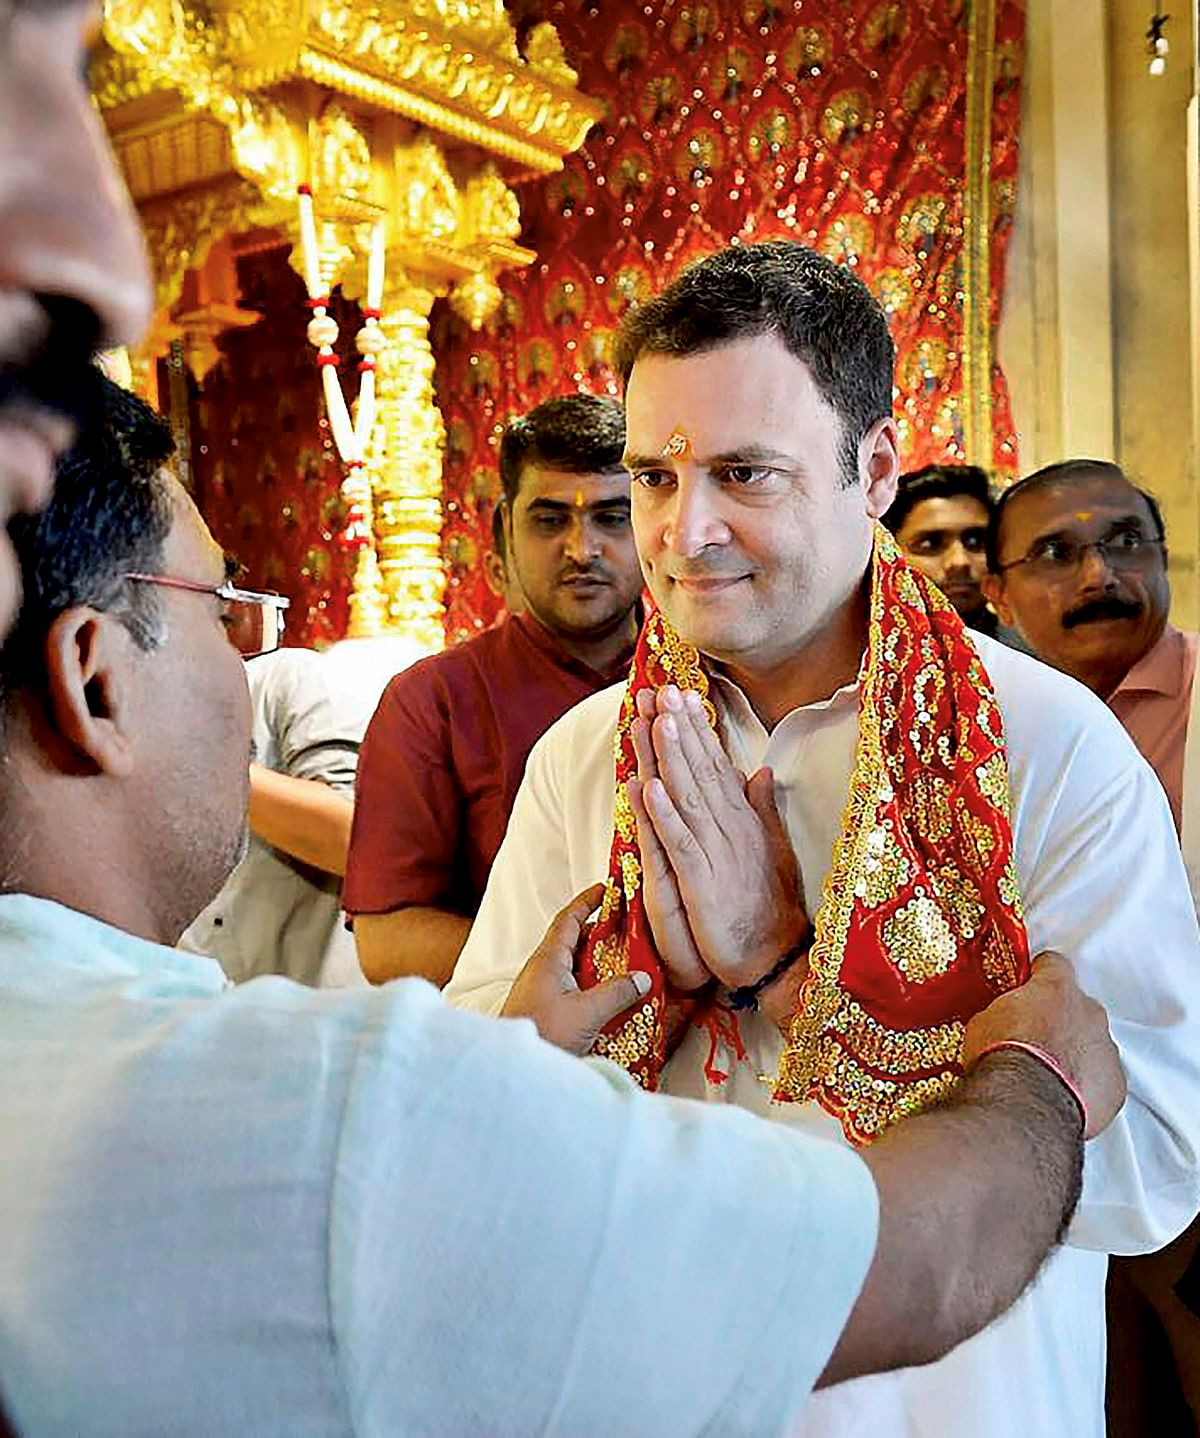 Congress President Rahul Gandhi during a visit to Shri Jagannathji Temple in Ahmedabad during the 2017 assembly election campaign.